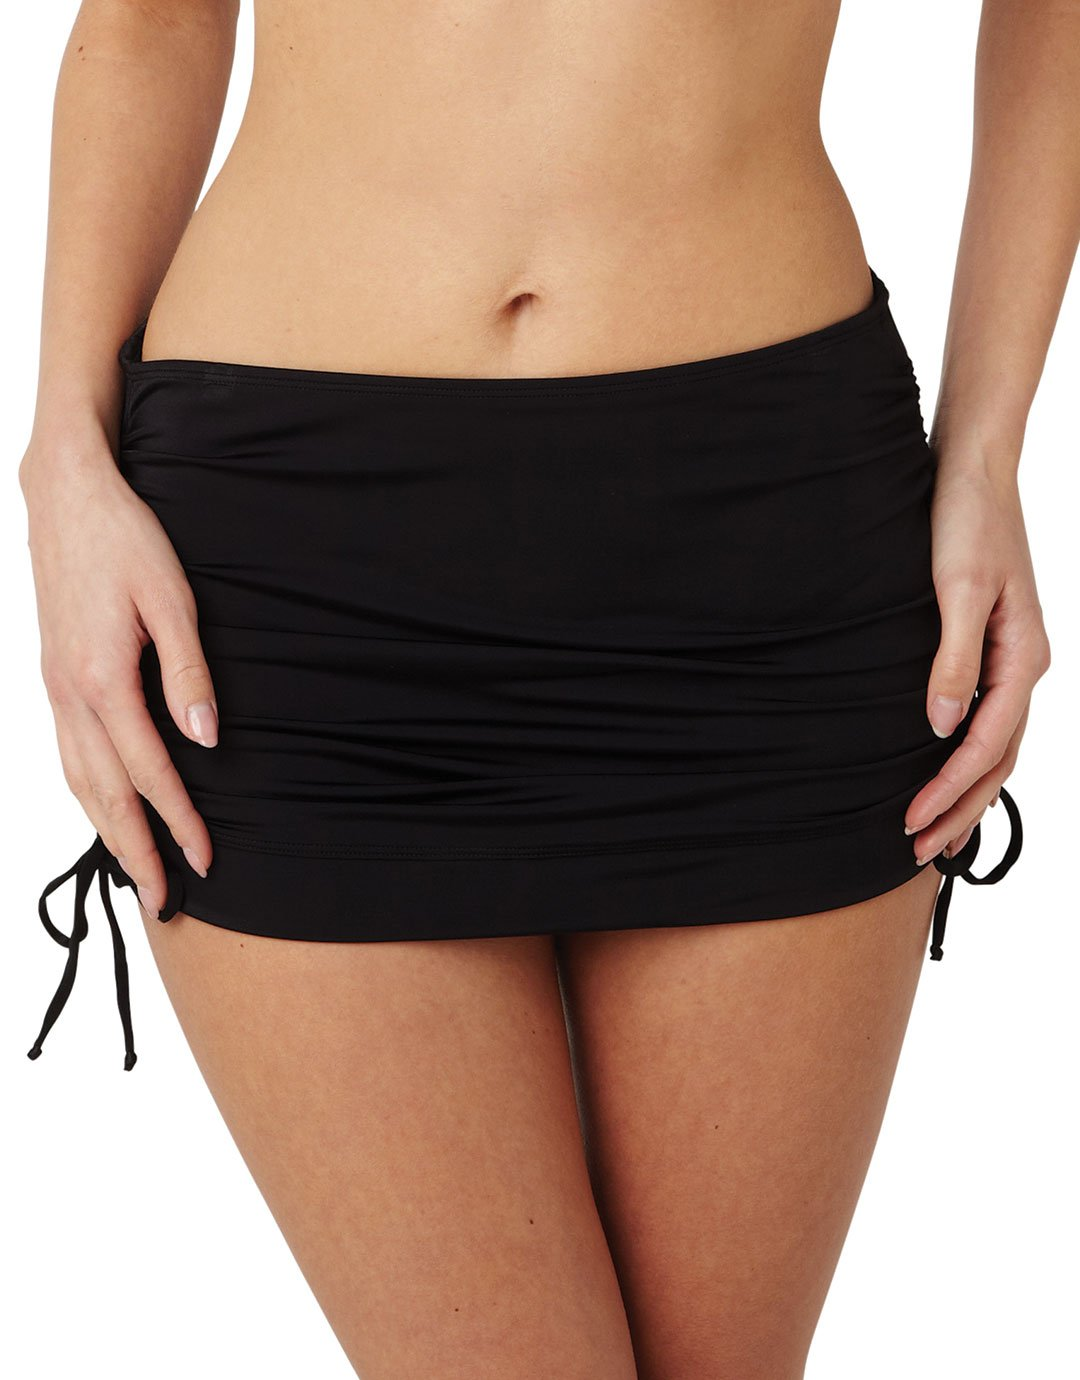 Panache Anya Skirted Pant - Black